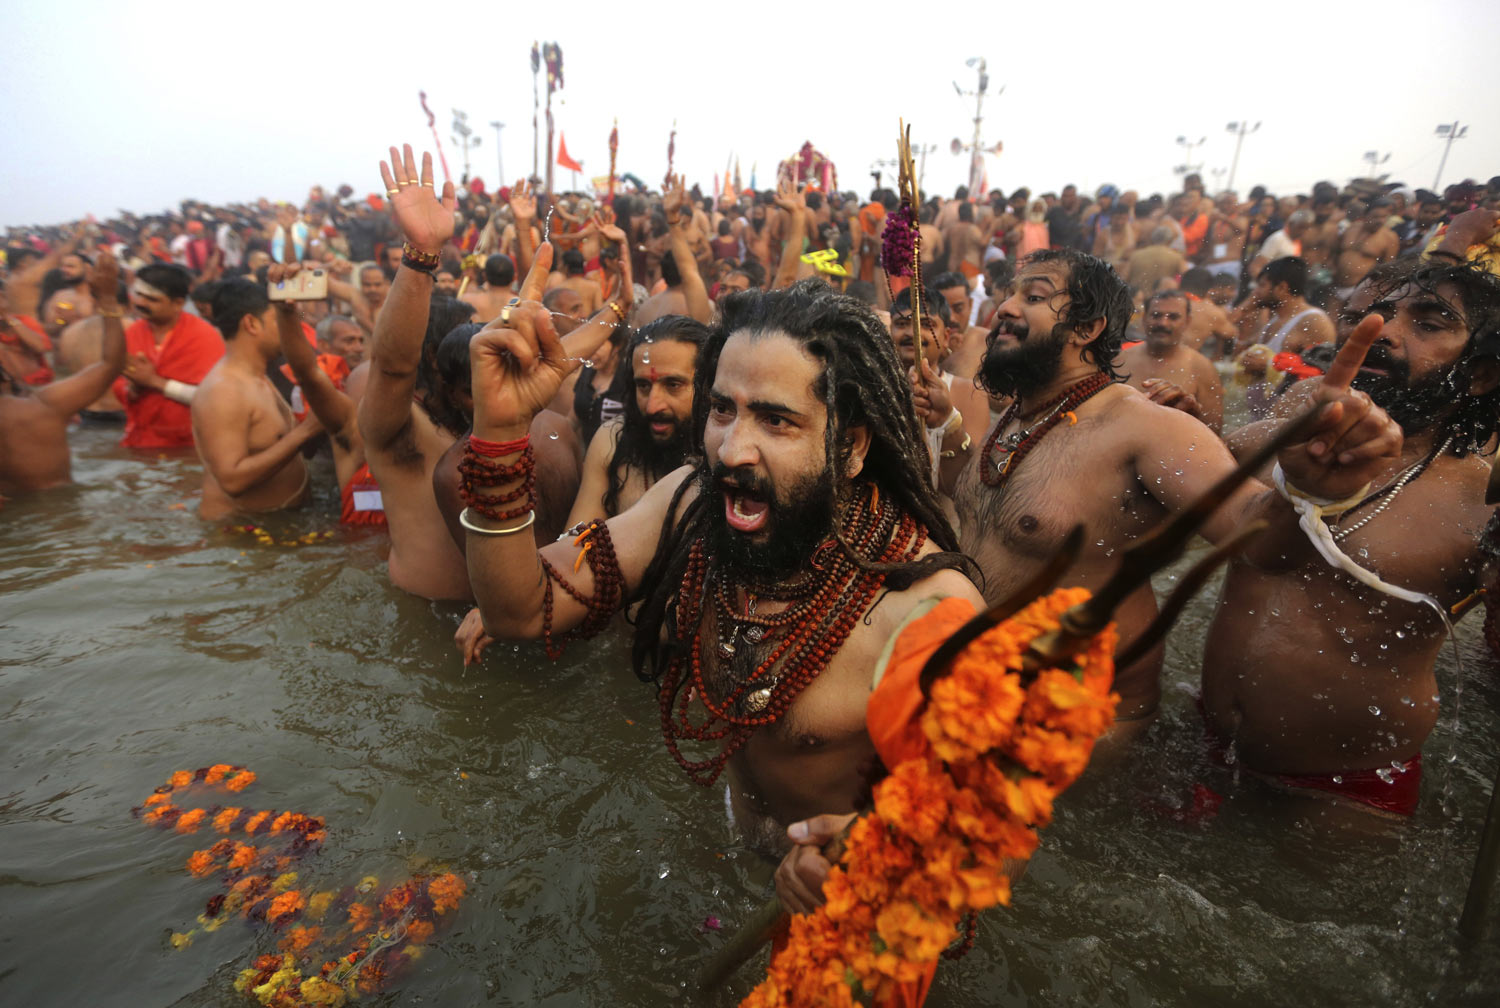 Naga Sadhus, naked Hindu holy men, take dips at Sangam, the confluence of three sacred rivers - the Yamuna, the Ganges and the mythical Saraswati - on Mauni Amavsya or the new moon day, the most auspicious day during the Kumbh Mela in Prayagraj, Uttar Pradesh state, India, on Monday, Feb. 4, 2019. The Kumbh Mela, or the Pitcher Festival, is a series of ritual baths by sadhus and other pilgrims that dates back to at least medieval times. Worshippers bathe in the river believing it cleanses them of their sins and ends their process of reincarnation. The event, which UNESCO added to its list of intangible human heritage in 2017, is the largest congregation of pilgrims on earth. Some 150 million people are expected to attend this year's Kumbh, which runs through early March. (AP Photo/Channi Anand)